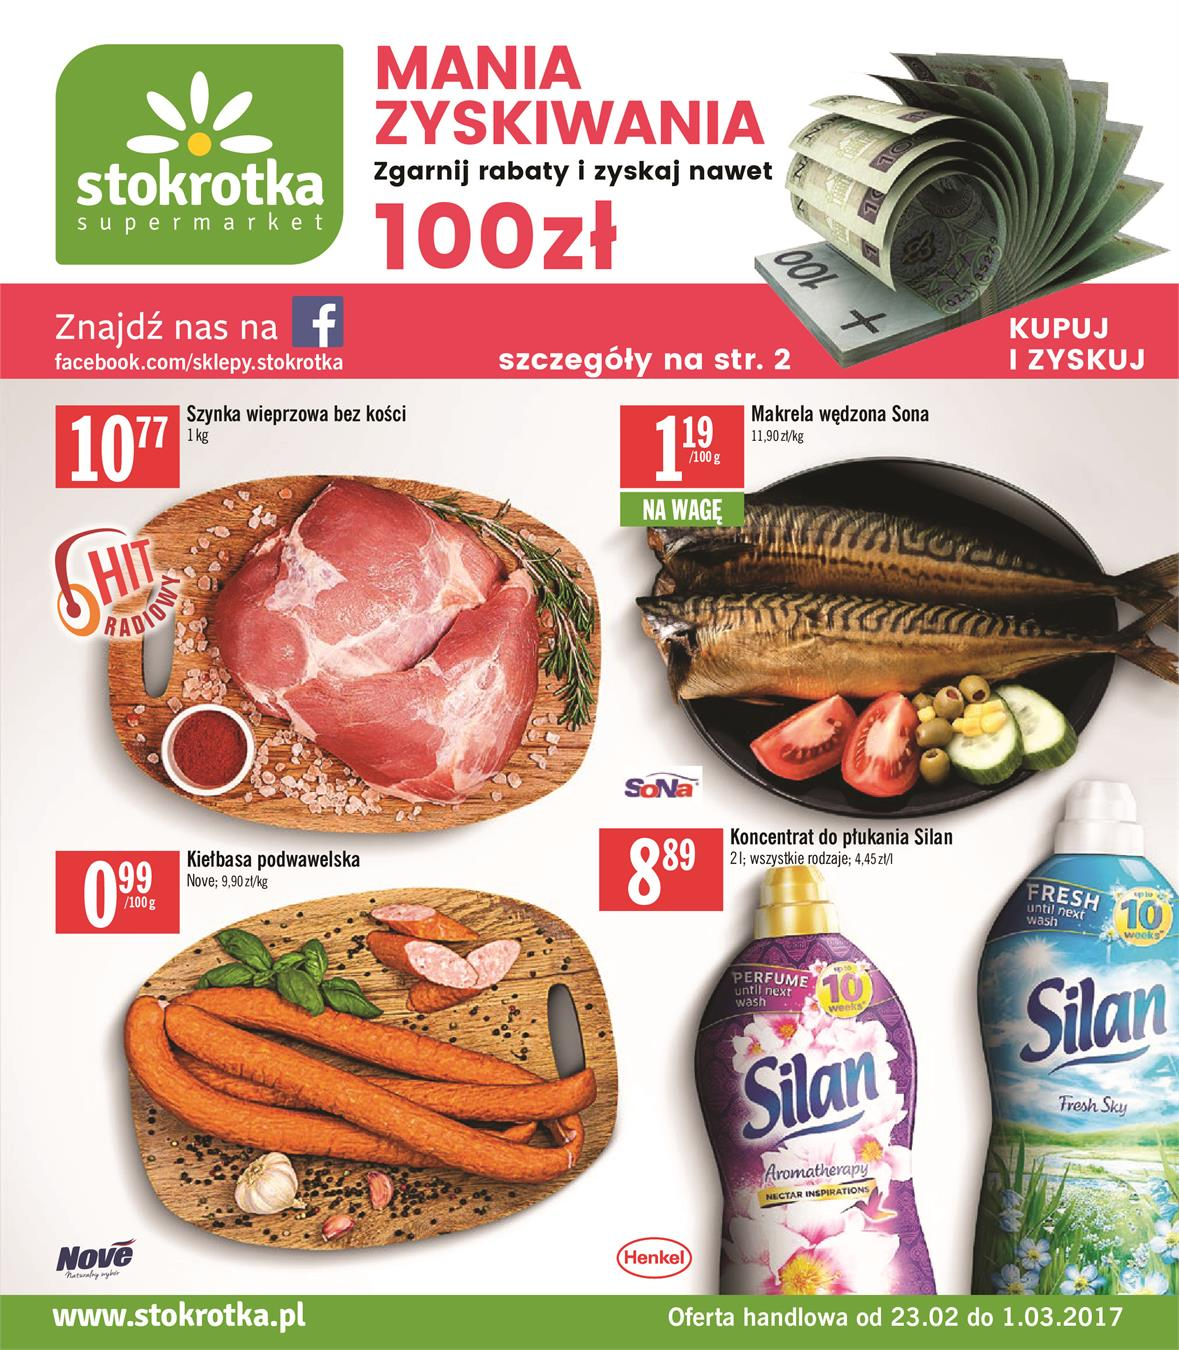 Gazetka Stokrotka Sp. z o.o. nr 0 od 2017-02-23 do 2017-03-01